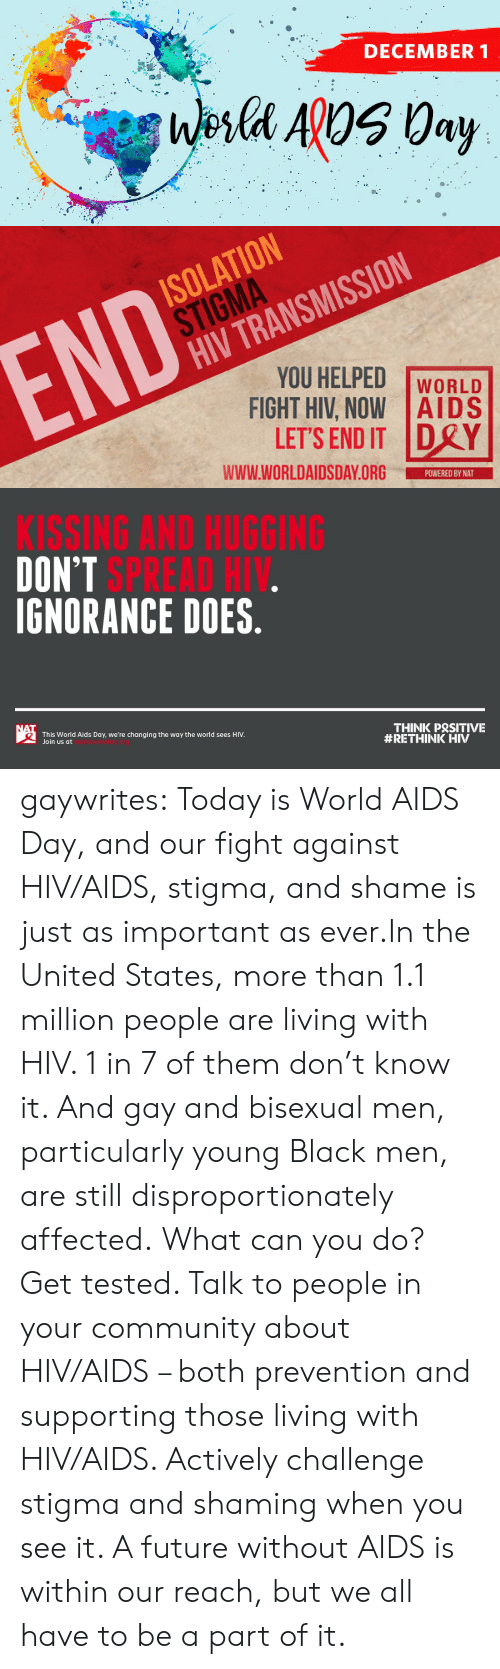 Within: DECEMBER 1  Wesla ApOS 0ay   ISOLATION  STIGMA  HIV TRANSMISSION  END  YOU HELPED  FIGHT HIV, NOW AIDS  LET'S END IT DRY  WORLD  www.WORLDAIDSDAY.ORG  POWERED BY NAT   KISSING AND HUGGING  DON'T SPREAD HIV.  IGNORANCE DOES.  NAT  THINK PRSITIVE  #RETHINK HIV  This World Aids Day, we're changing the way the world sees HIV.  Join us at gaywrites:  Today is World AIDS Day, and our fight against HIV/AIDS, stigma, and shame is just as important as ever.In the United States, more than 1.1 million people are living with HIV. 1 in 7 of them don't know it. And gay and bisexual men, particularly young Black men, are still disproportionately affected. What can you do? Get tested. Talk to people in your community about HIV/AIDS – both prevention and supporting those living with HIV/AIDS. Actively challenge stigma and shaming when you see it. A future without AIDS is within our reach, but we all have to be a part of it.